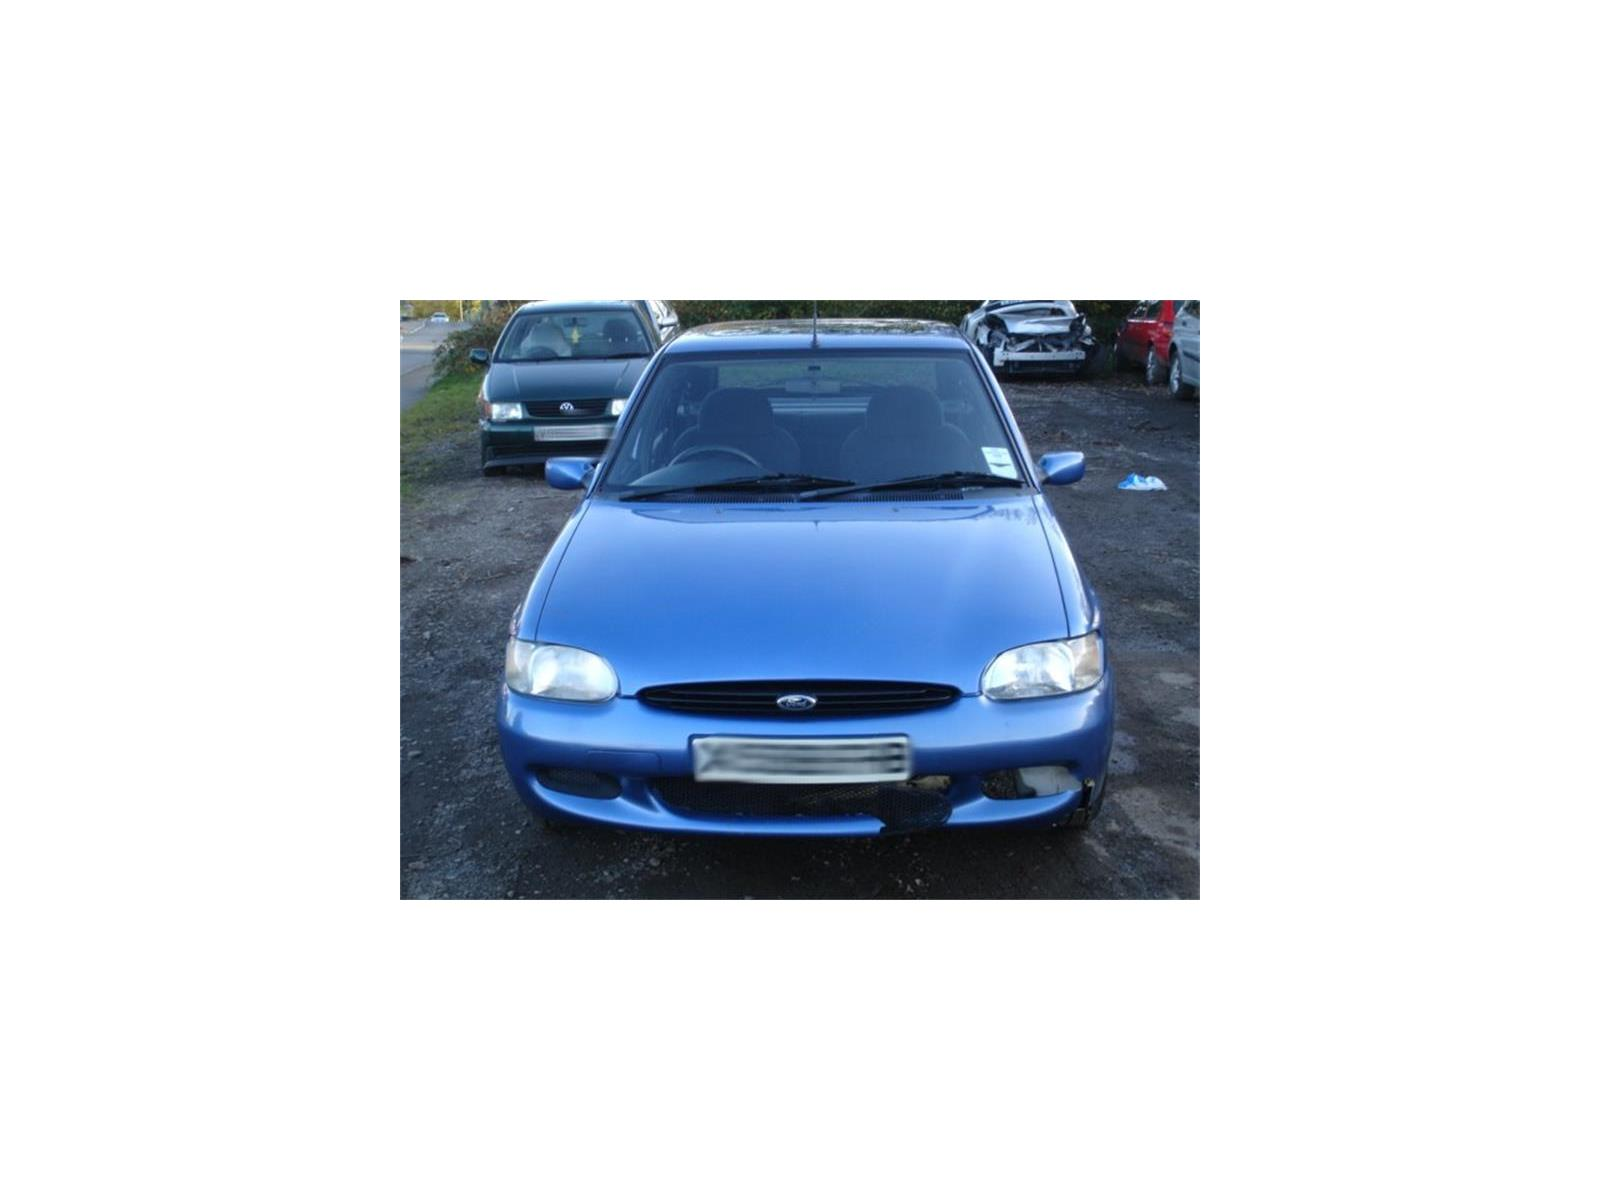 2001 ford escort 1999 to 2001 5 door hatchback petrol manual rh partmart co  uk Ford ZX2 1999 ford escort repair manual